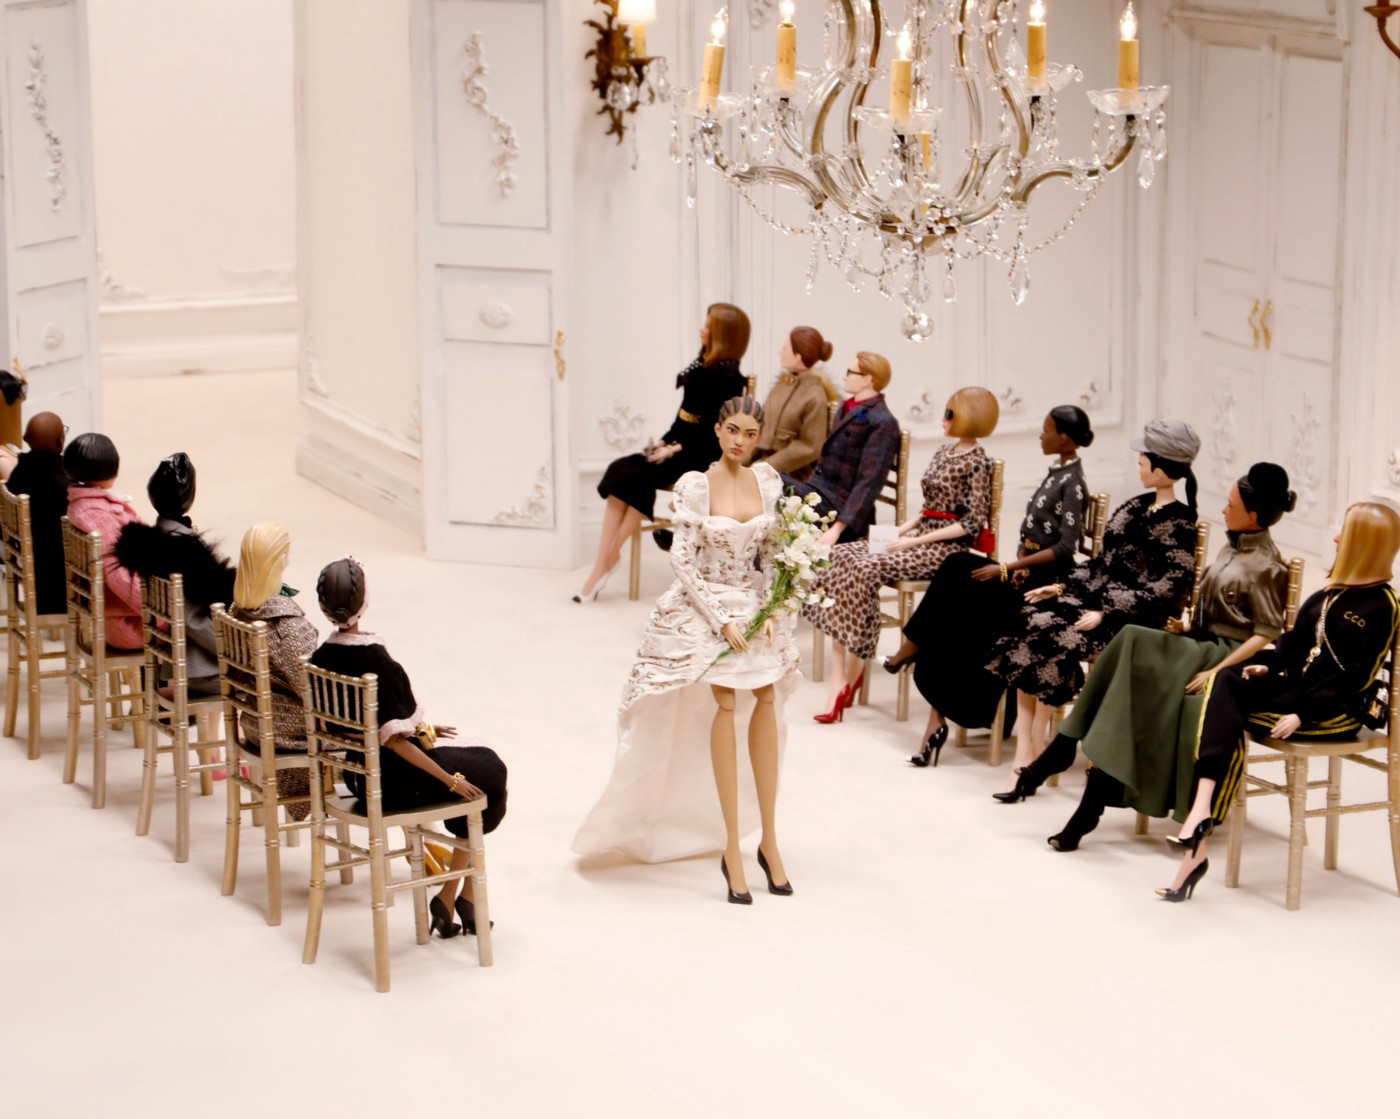 The Moschino puppet fashion show, with marionette models and audience